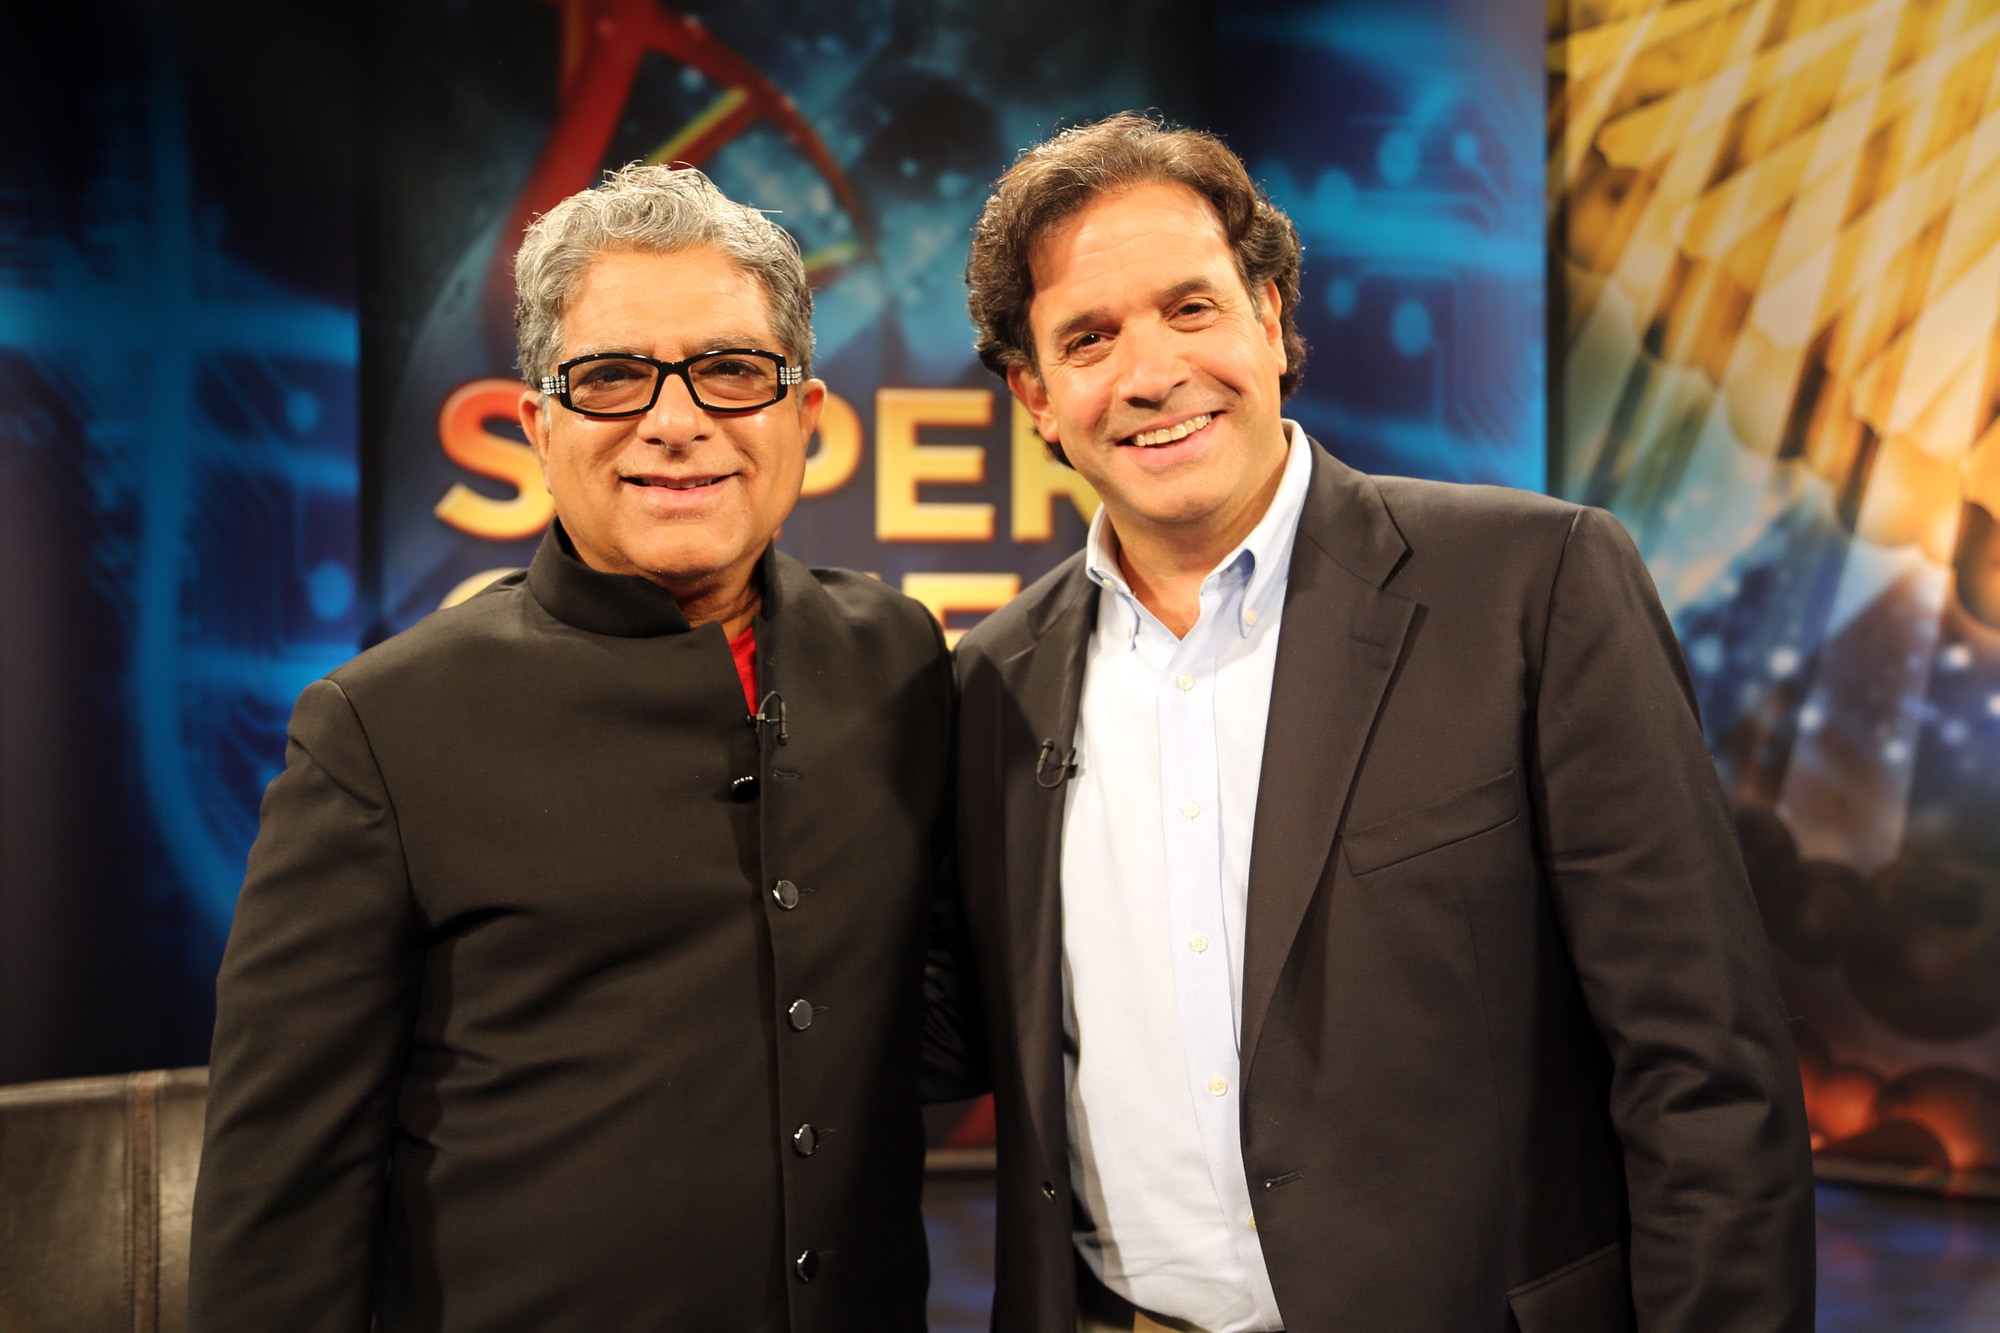 Dr. Randolph Tanzi with his co-author Deepak Chopra